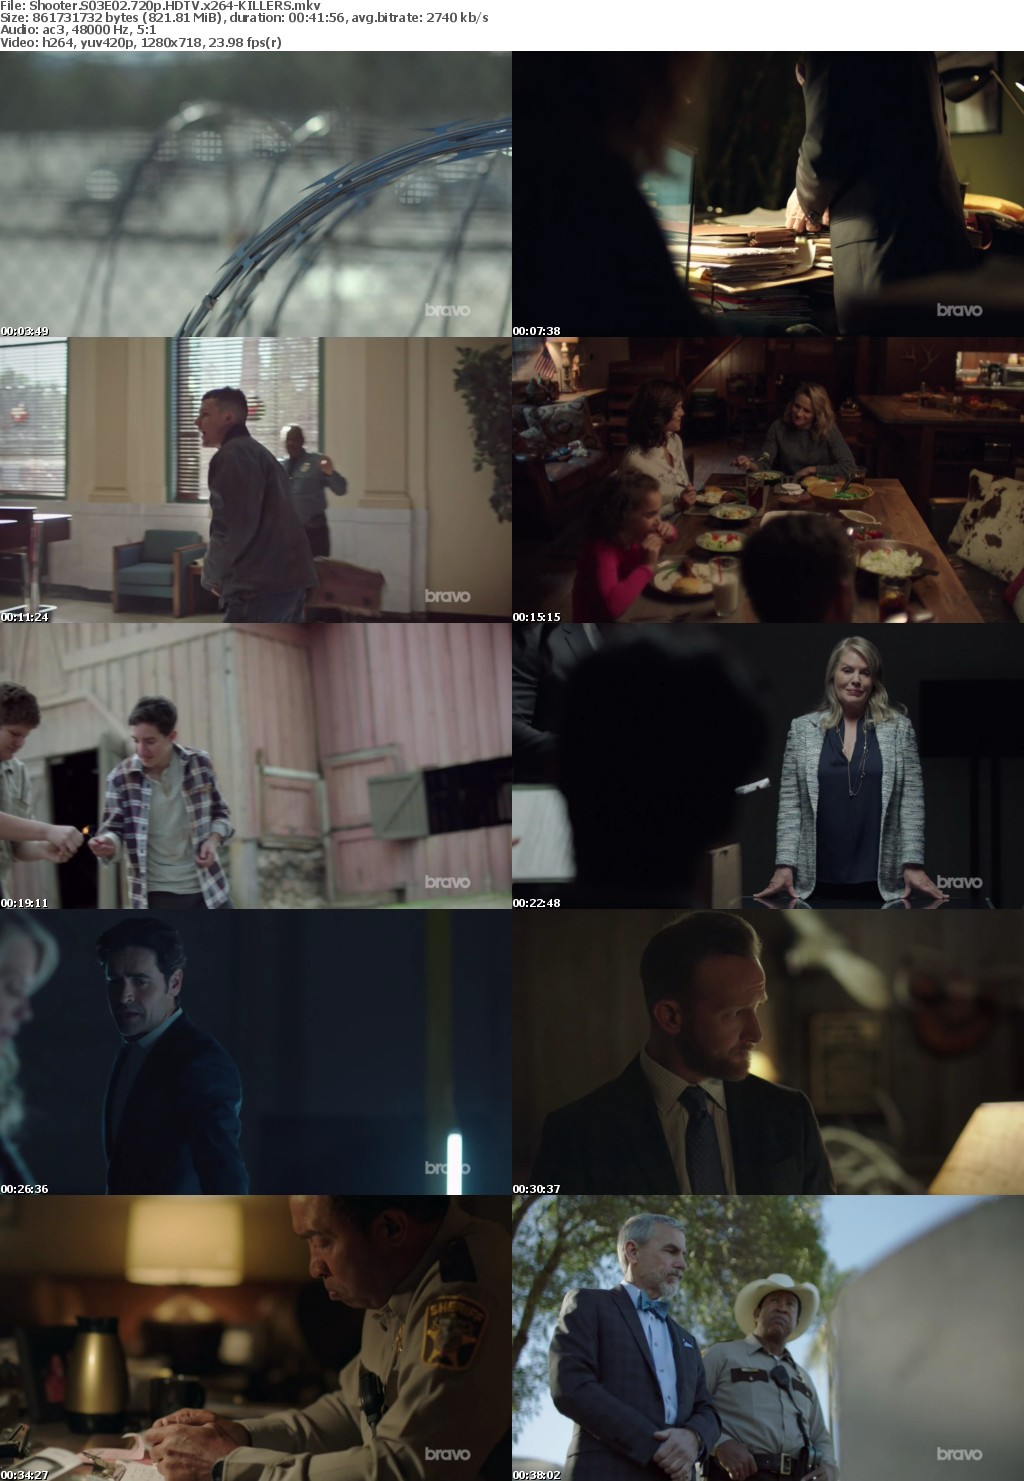 Shooter S03E02 720p HDTV x264-KILLERS